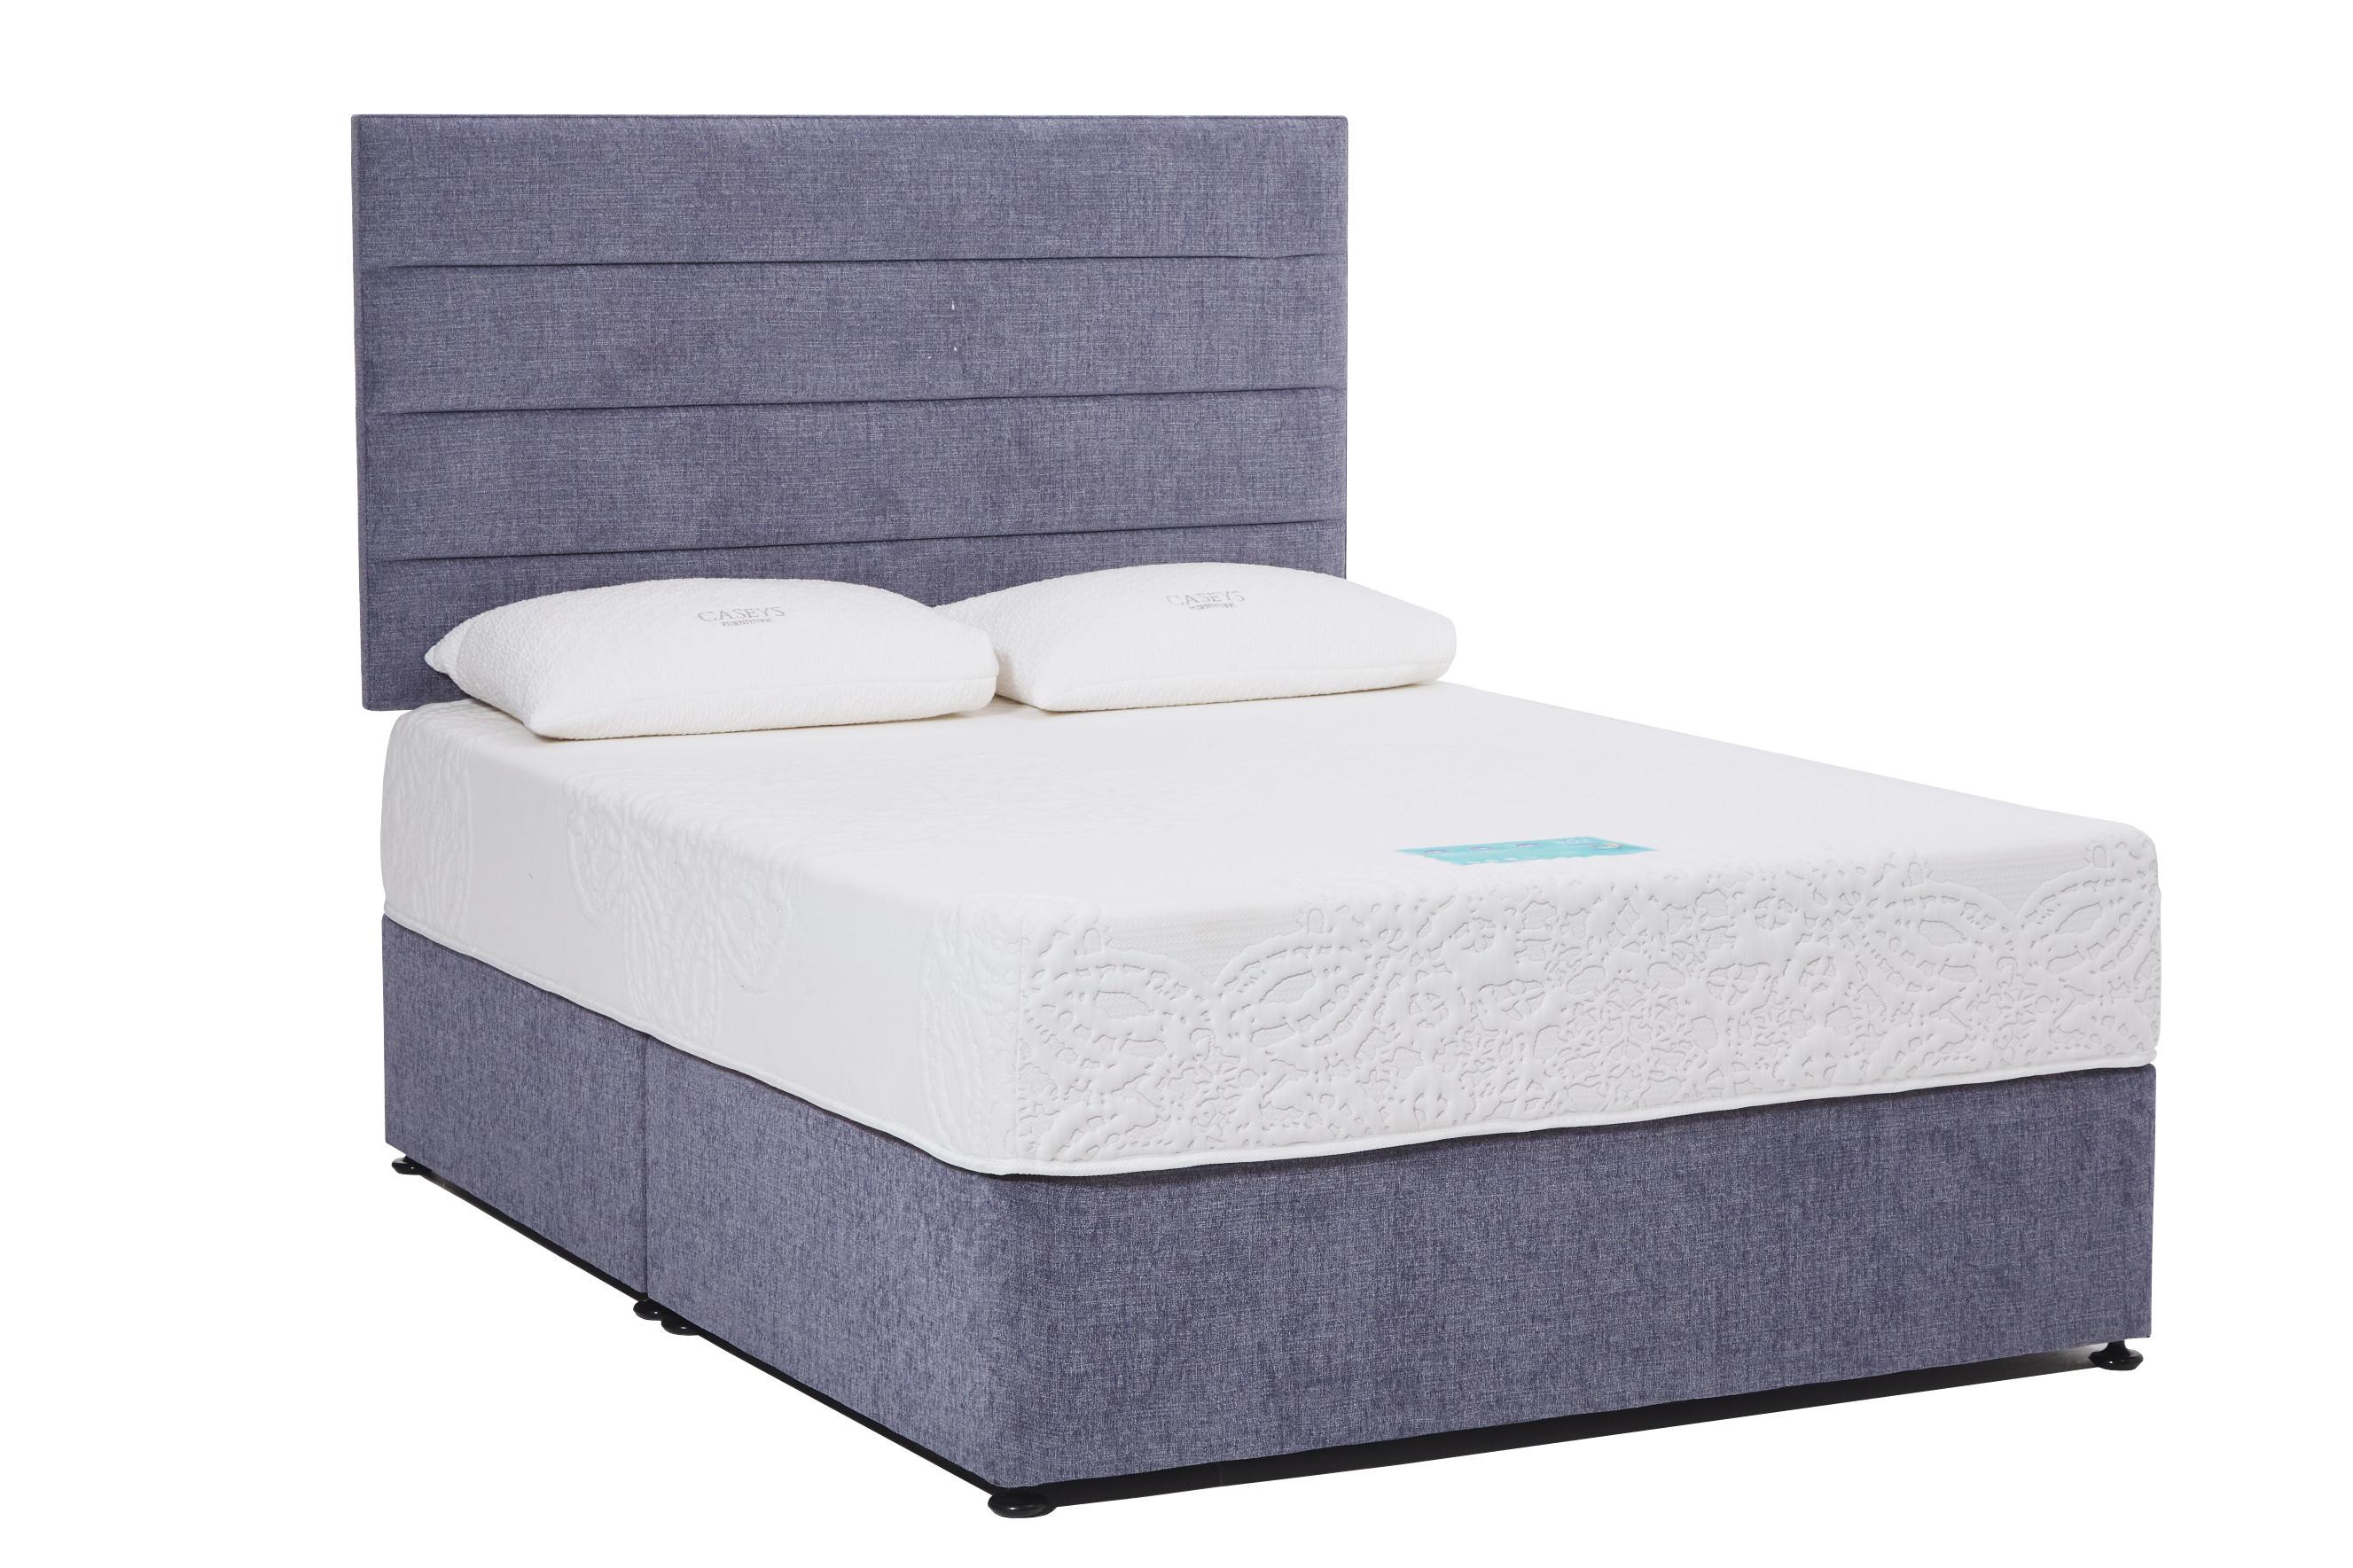 Kaymed iKool Saturn Comfort Mattress & Divan